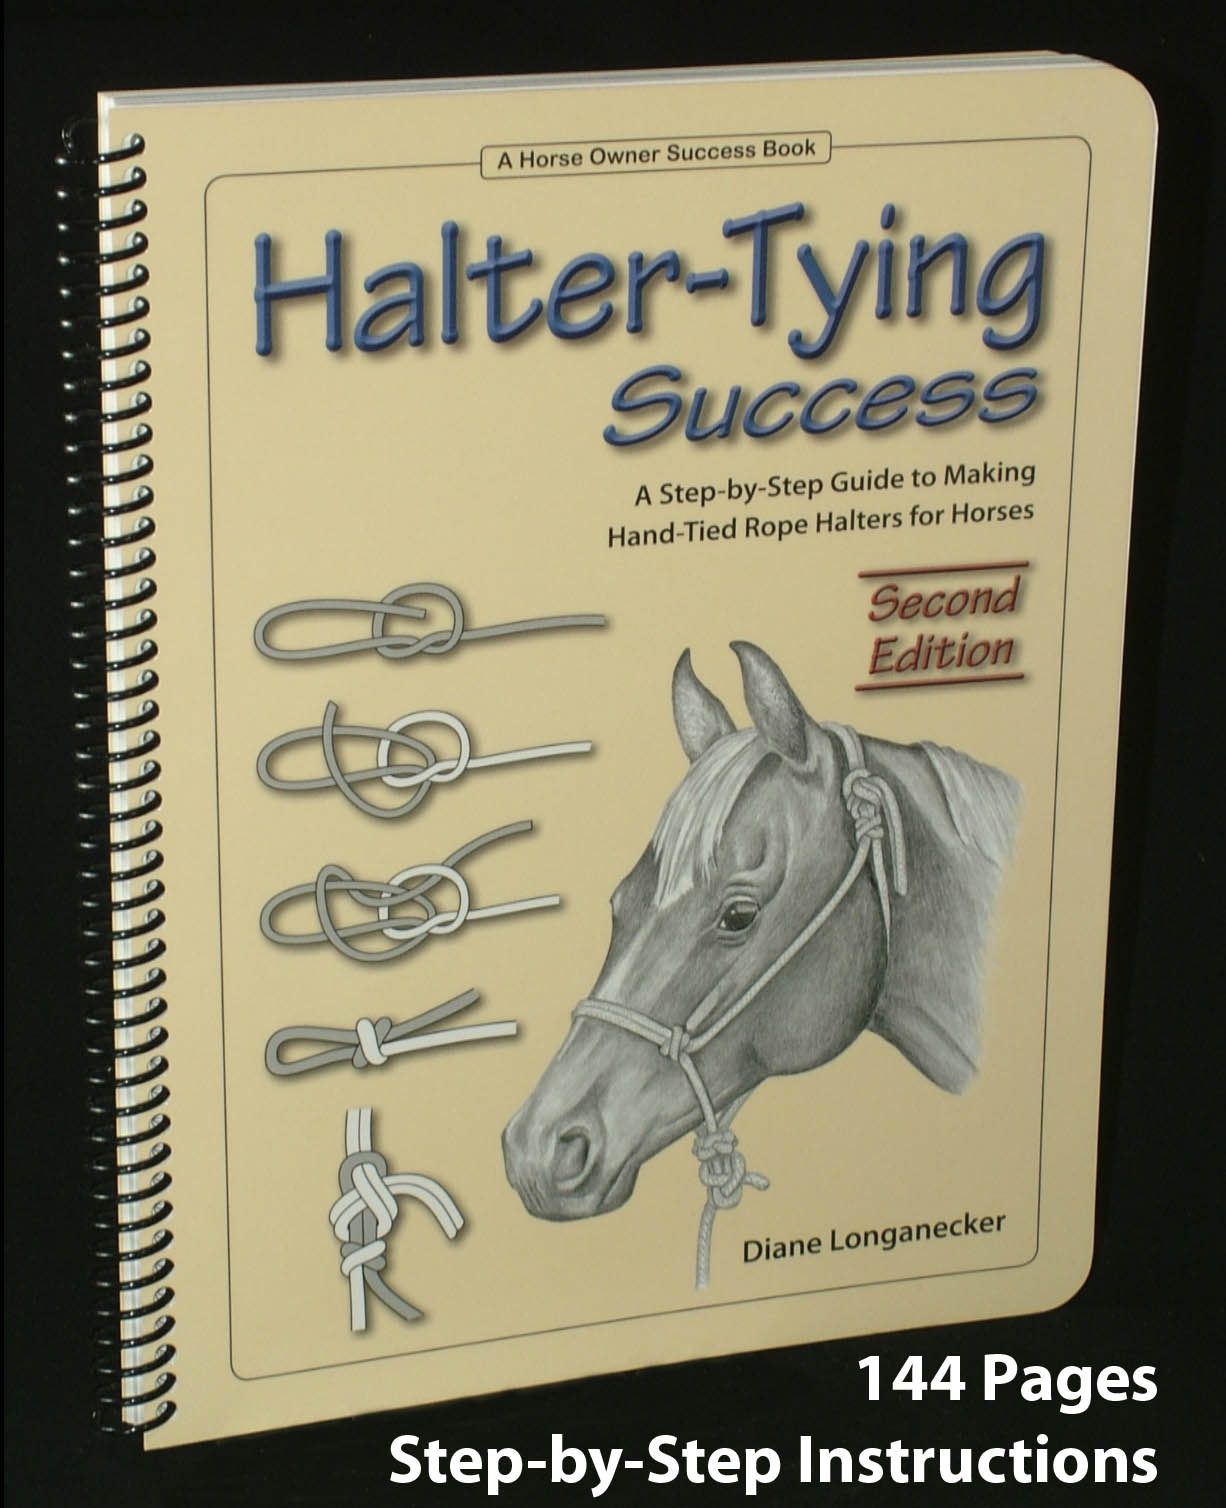 Photo of Halter-Tying Success cover